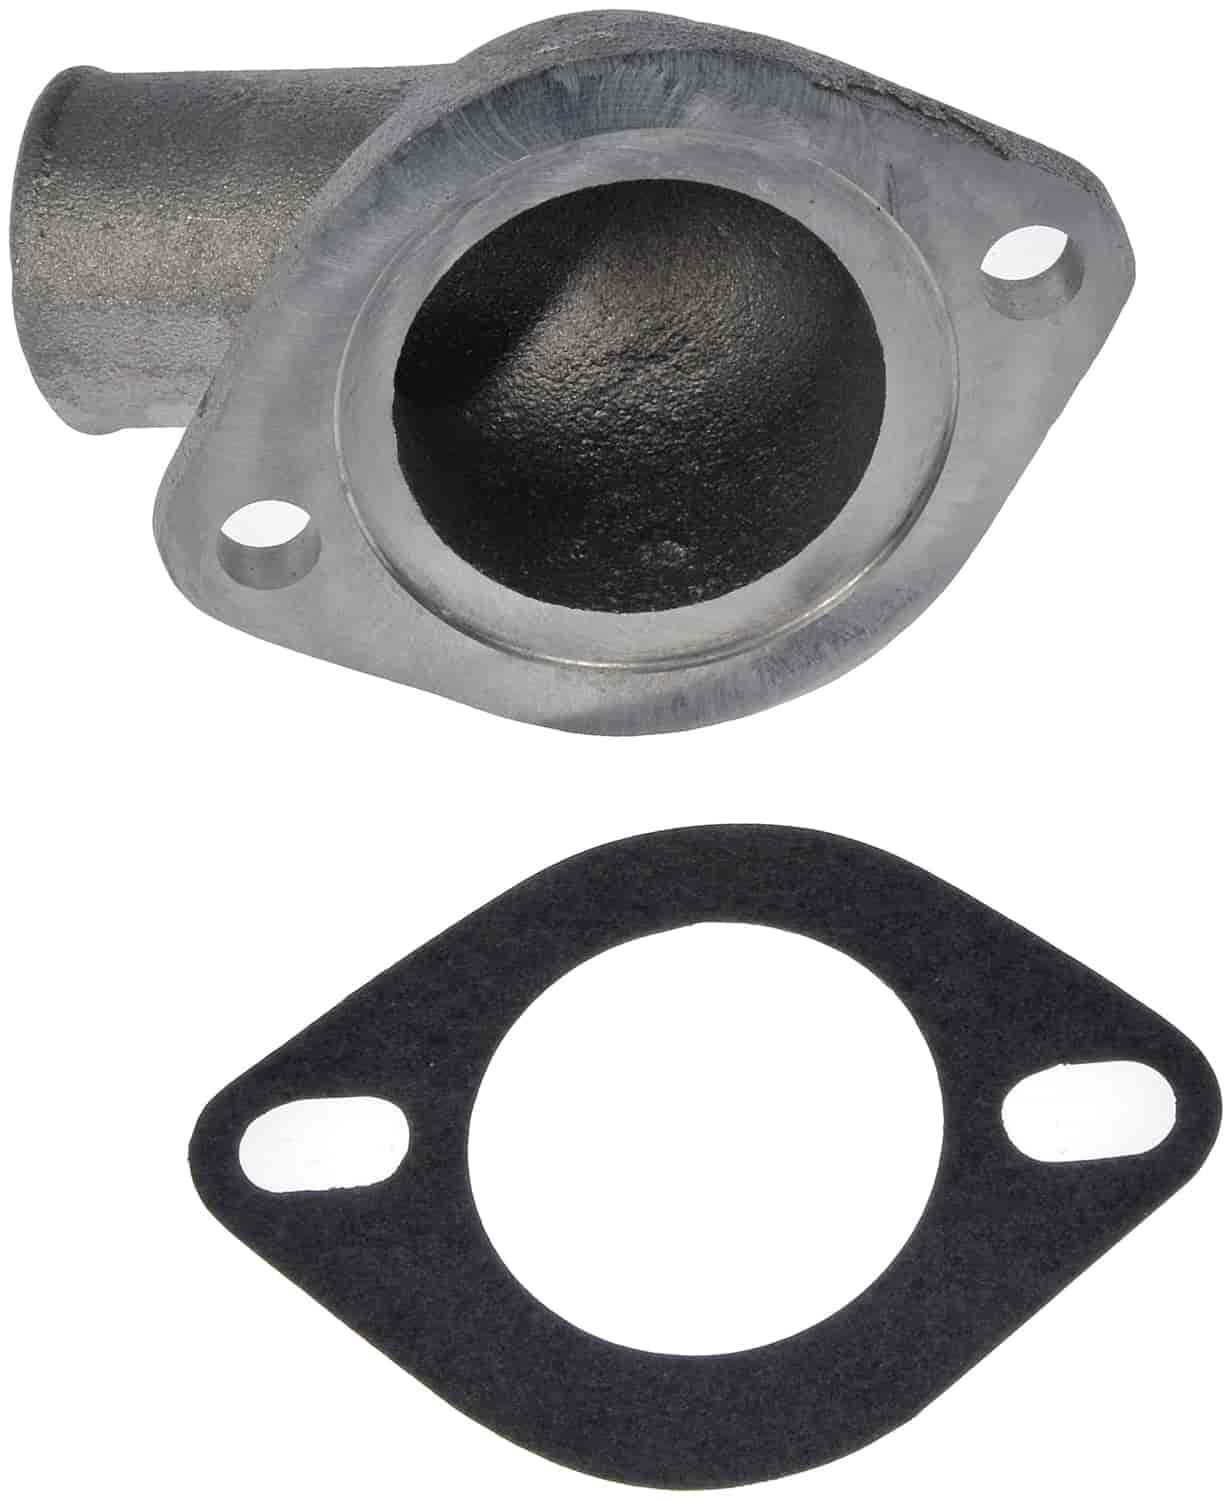 Dorman Products 902-3022